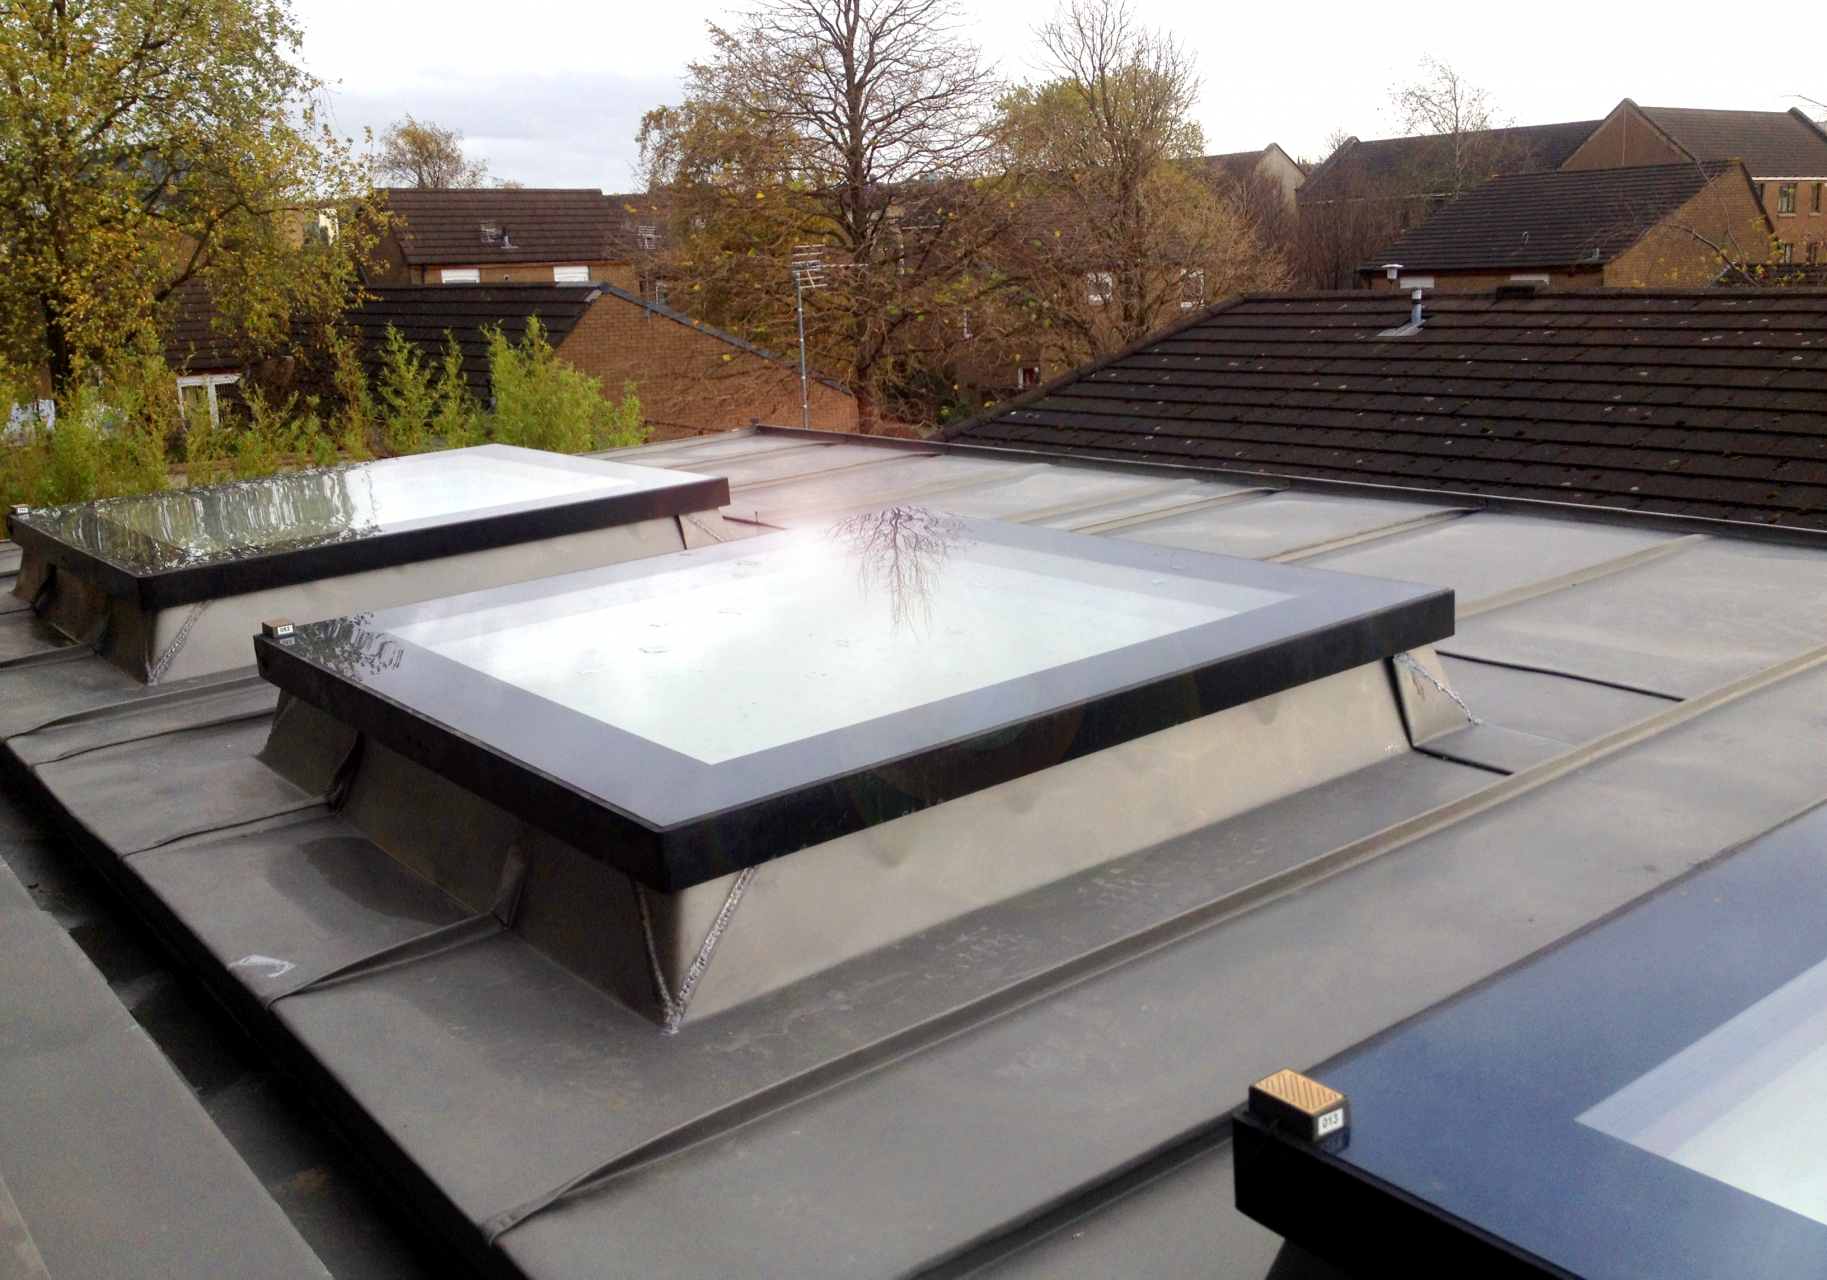 Flat roof windows in extension